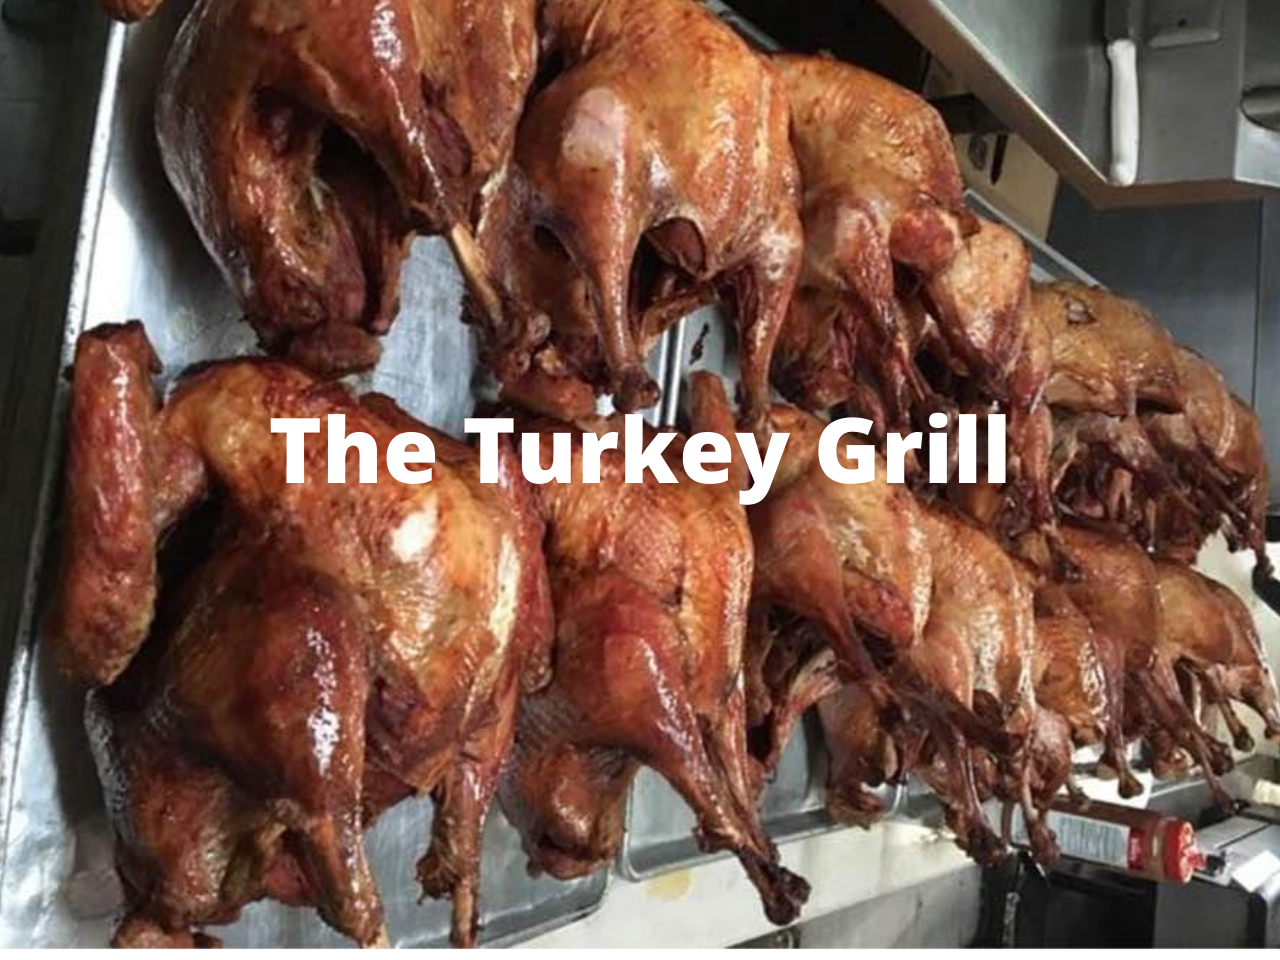 The Turkey Grill